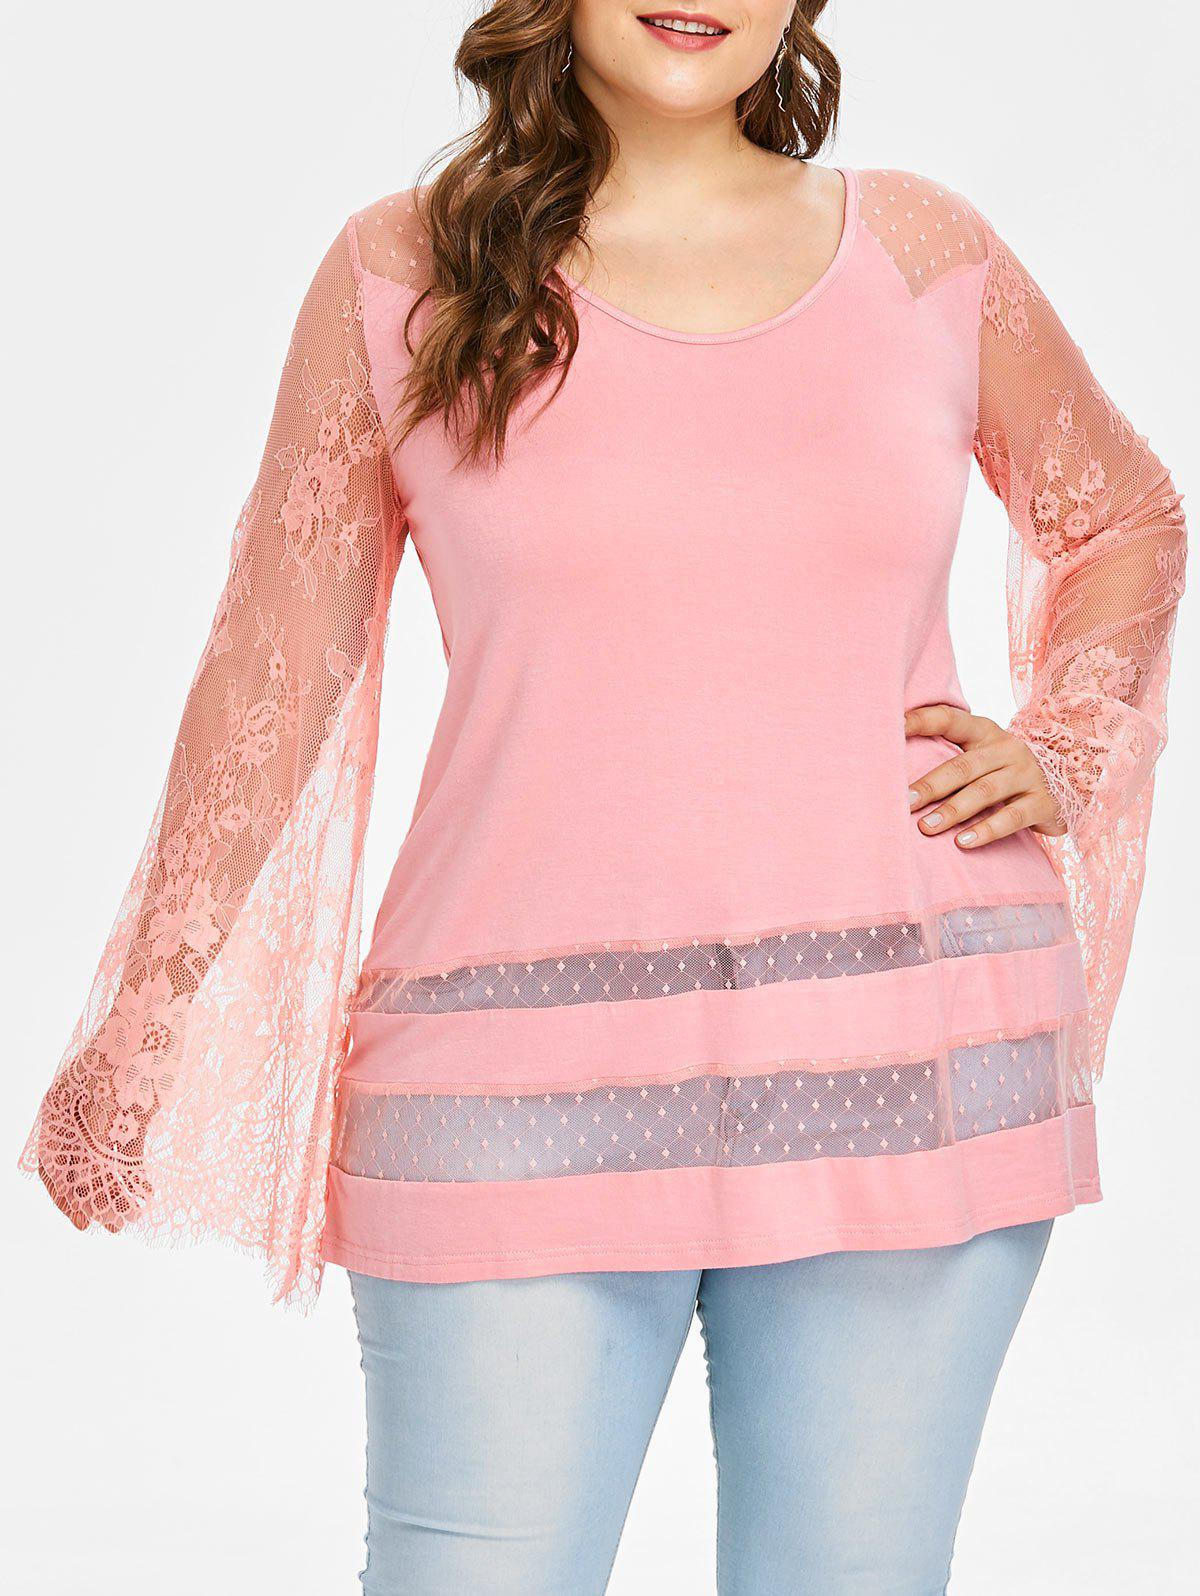 New Rosegal Plus Size Lace Trim Flare Sleeve T-shirt